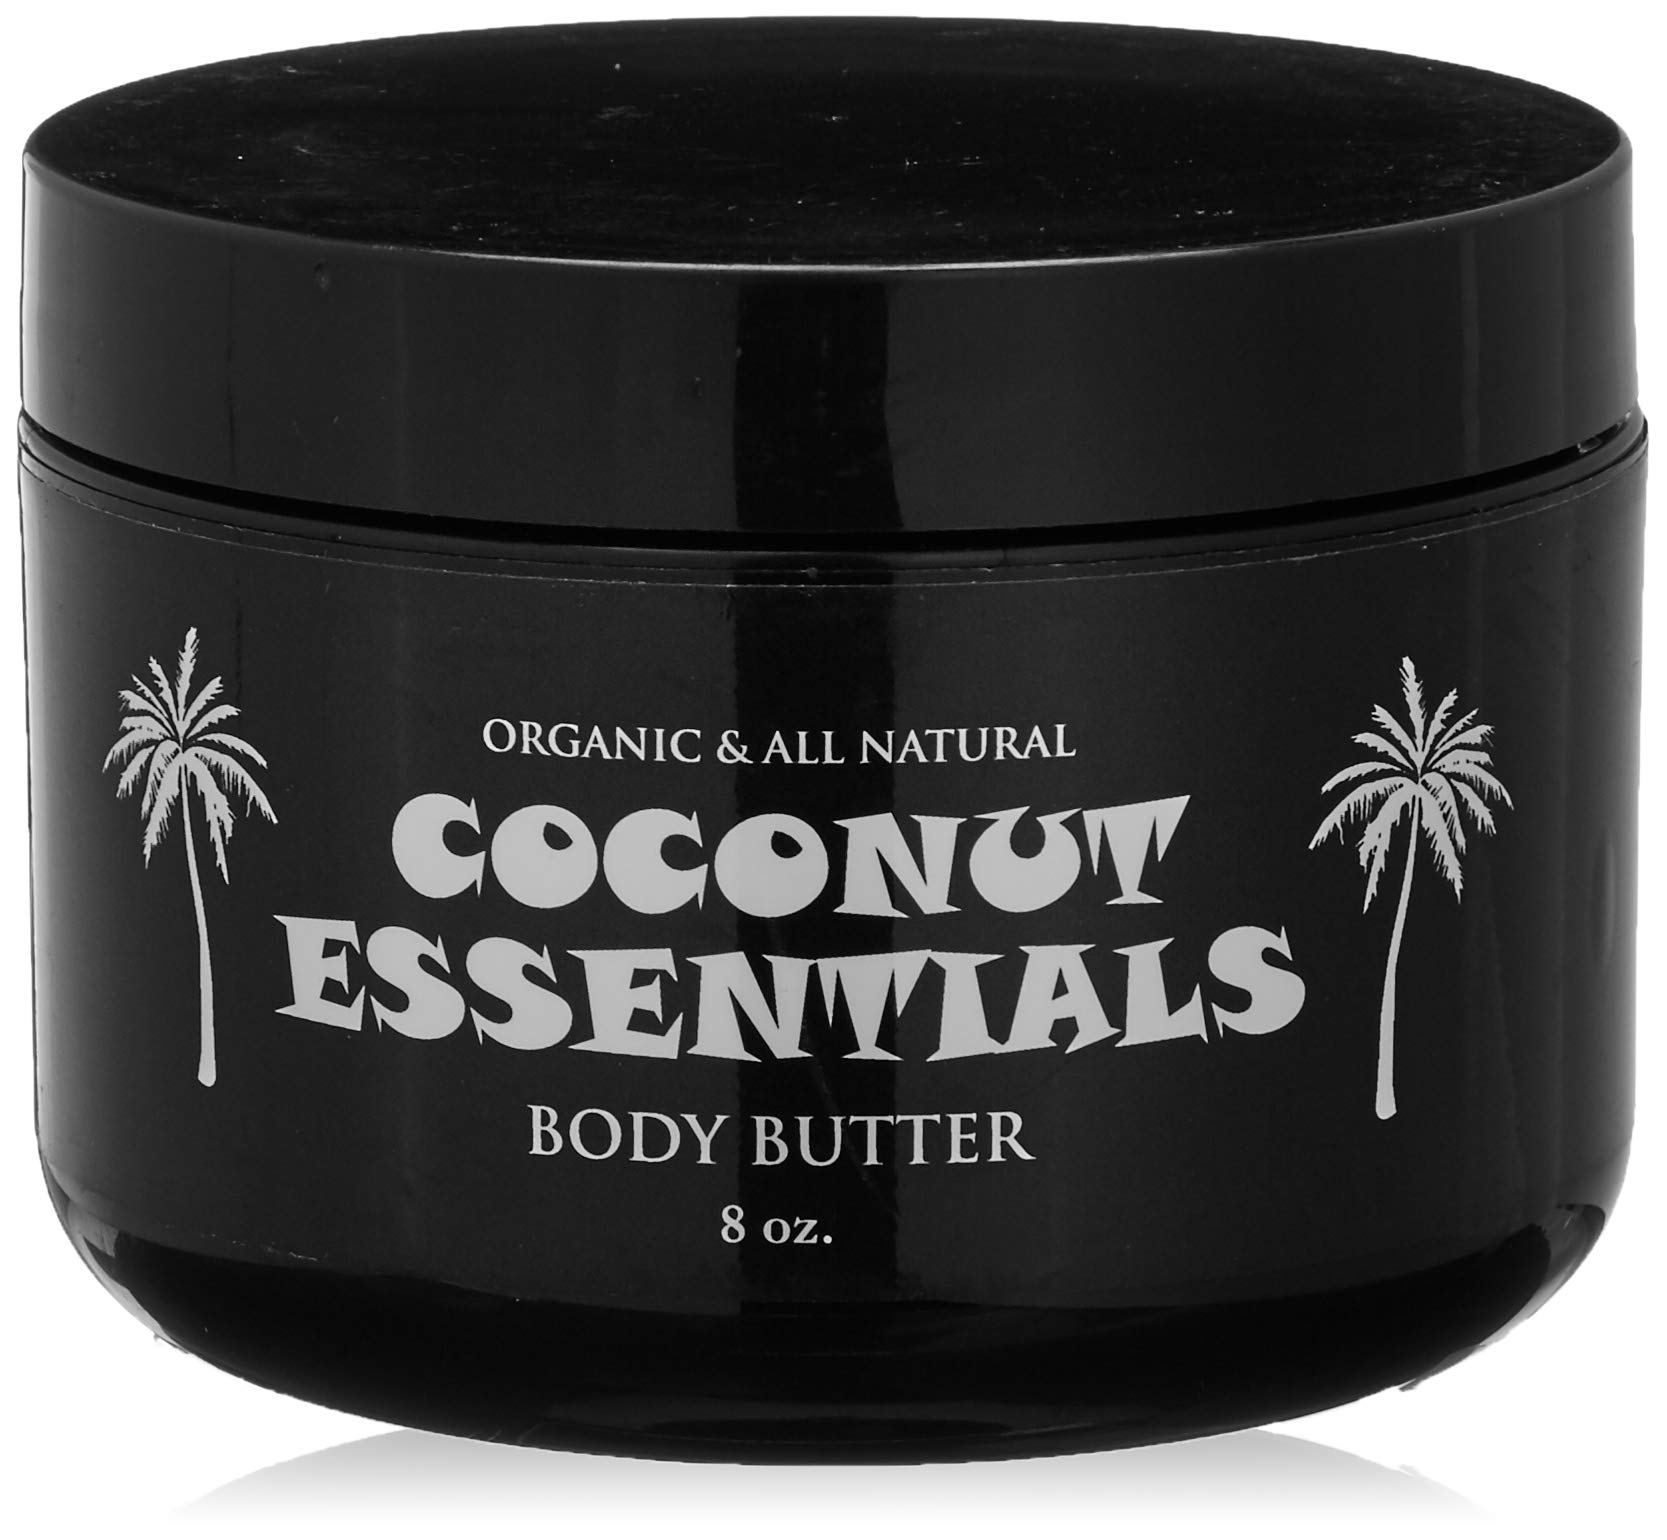 Coconut Essentials Moisturizing Body Butter - Coconut Oil, Vitamin E, Shea, Peppermint, Almond, Cocoa and Sunflower - for Beautiful and Glowing Skin!! 8 oz